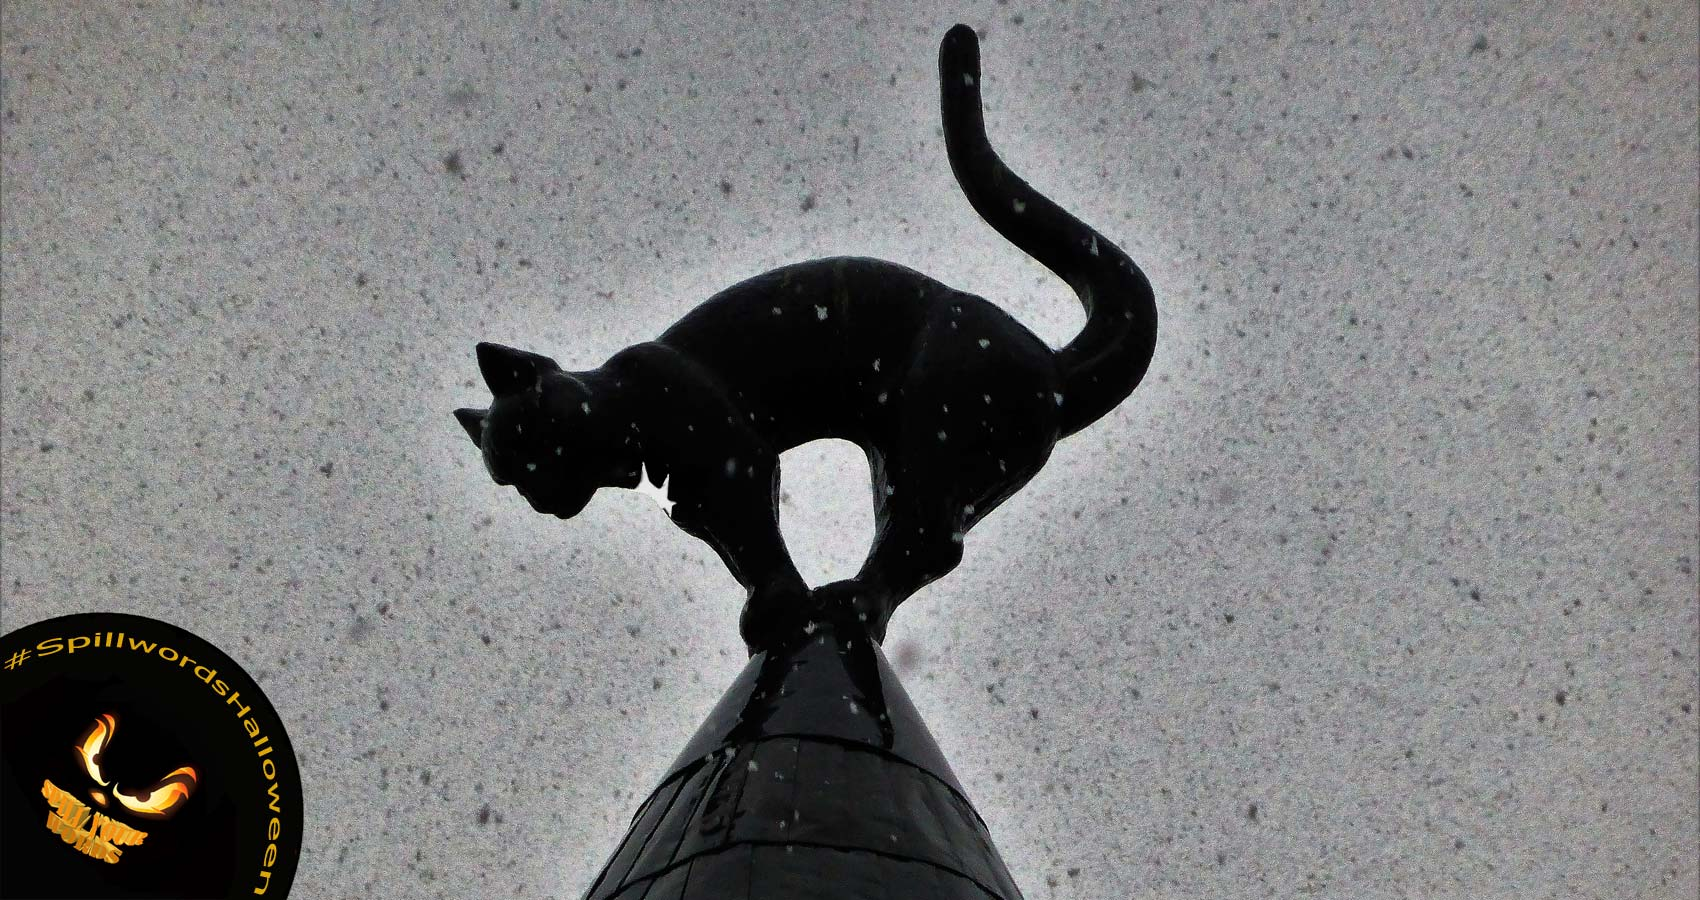 Cat Sith of Annan, poetry by Christina Ciufo at Spillwords.com